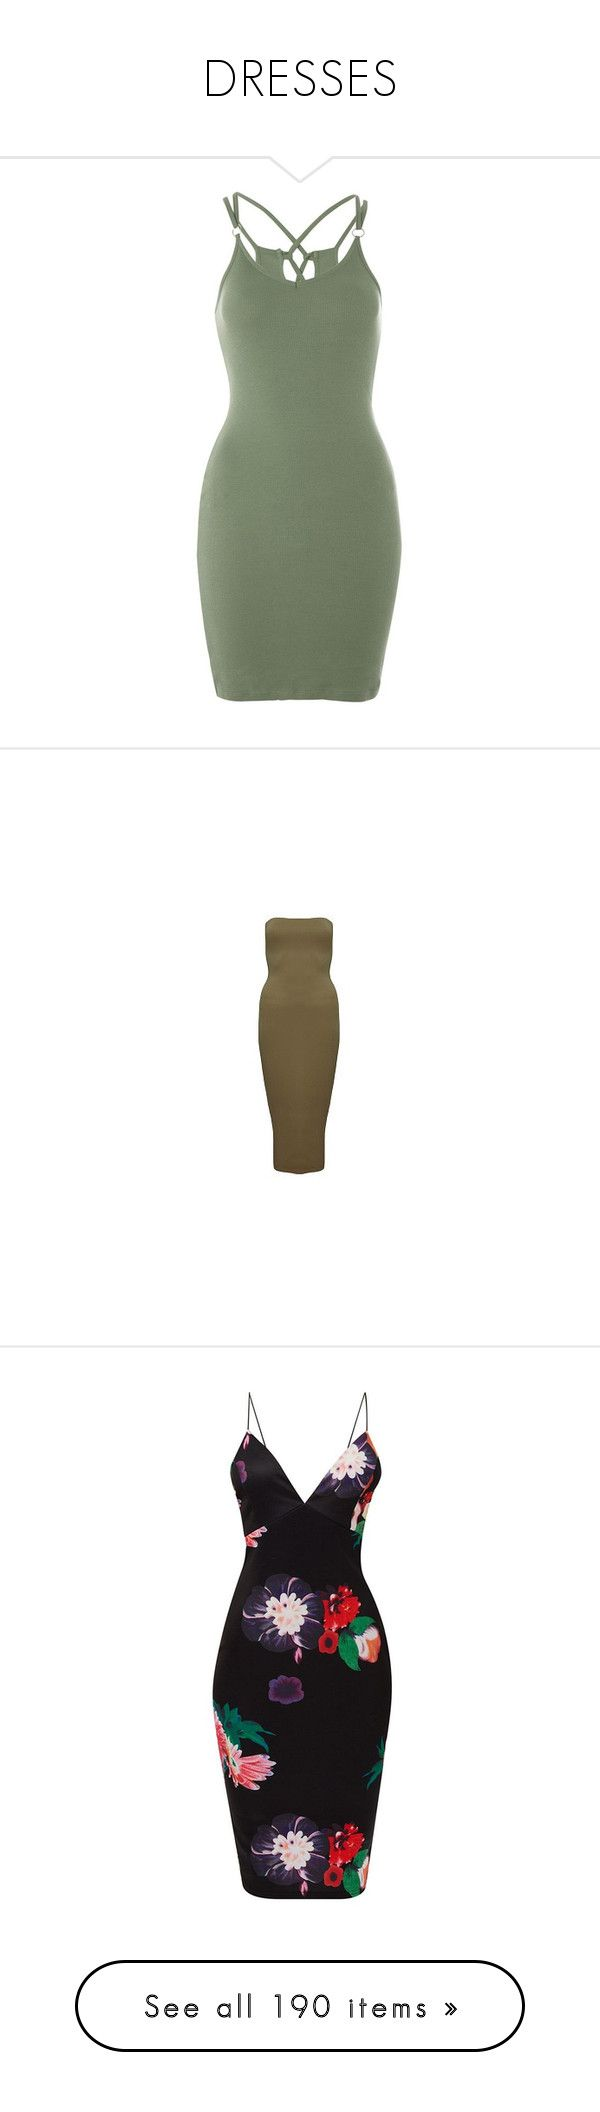 """DRESSES"" by bxtchslayy ❤ liked on Polyvore featuring dresses, braid dress, lattice bodycon dress, topshop cocktail dresses, topshop dresses, green body con dress, brown midi dress, midi day dresses, brown bodycon dress and bandeau dress"